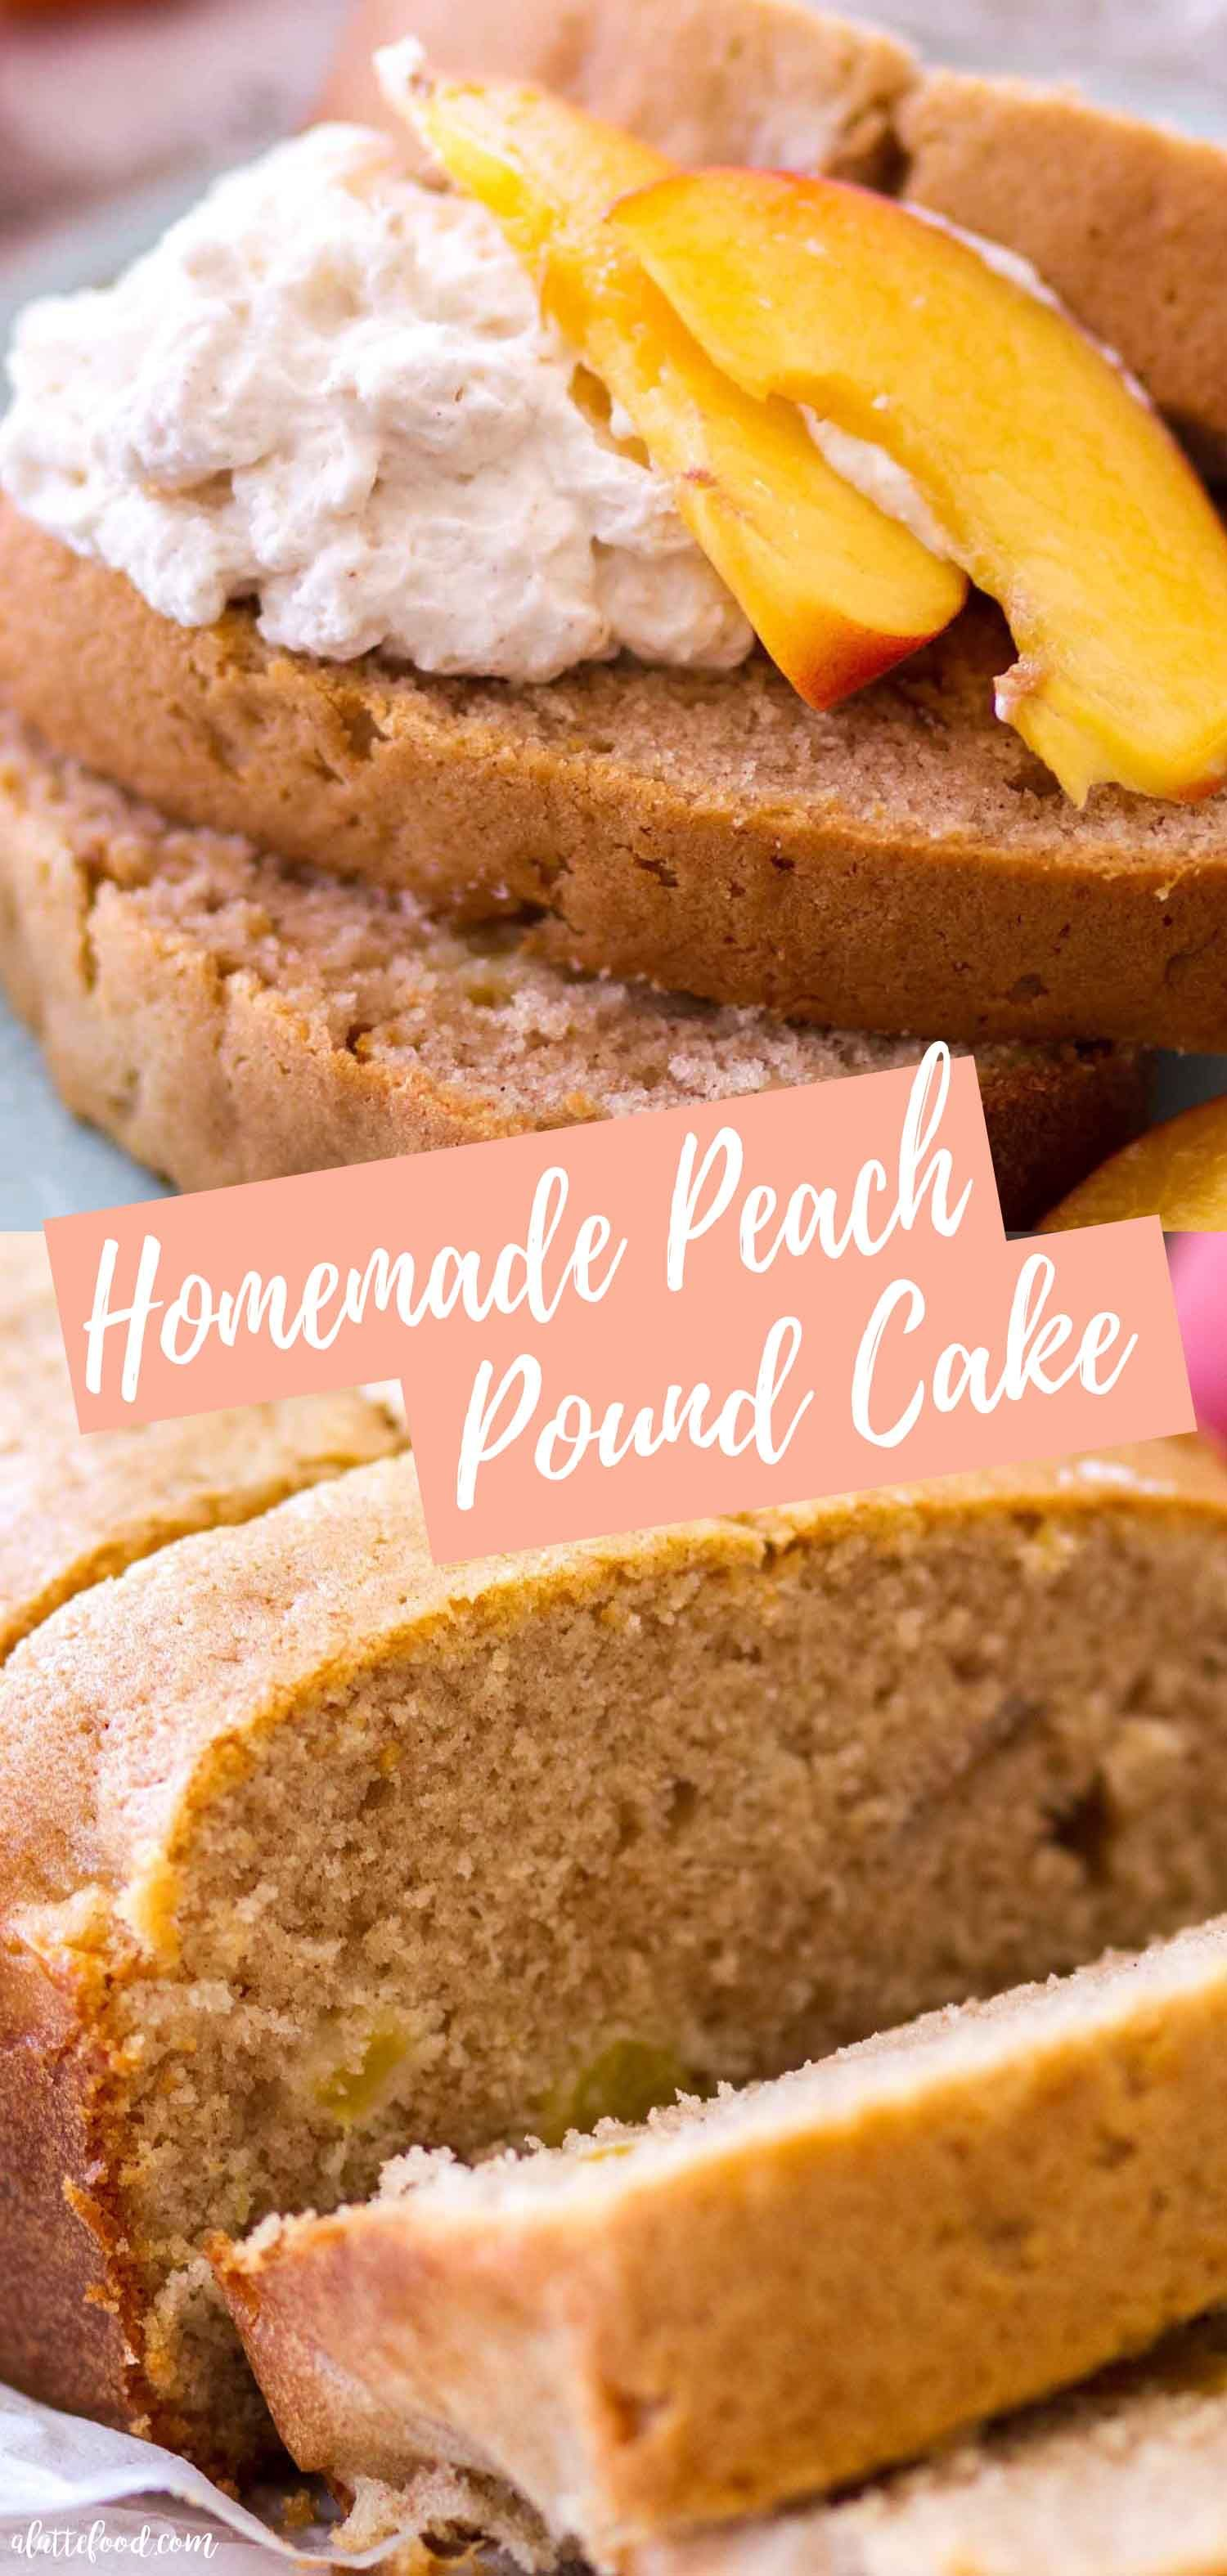 This homemade Peach Pound Cake recipe is made with fresh peaches and can be made into a loaf or in a bundt cake pan  Sour cream peach pound cake is a summer staple and is perfect when topped with whip is part of Desserts -